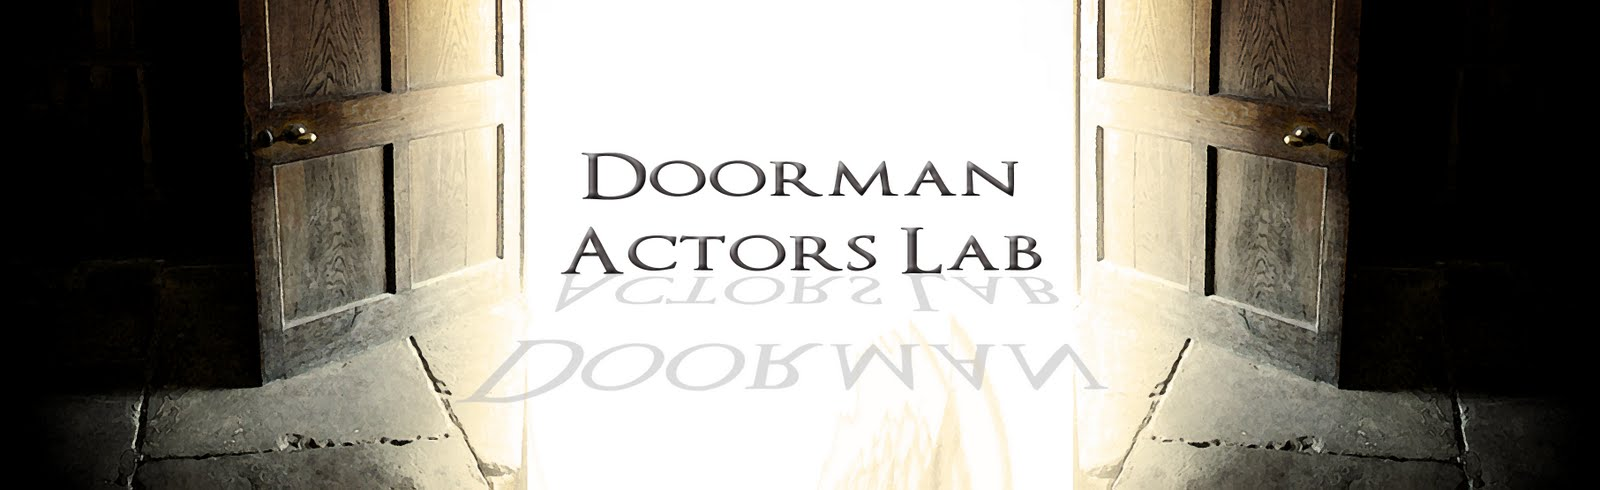 Doorman Actors Lab